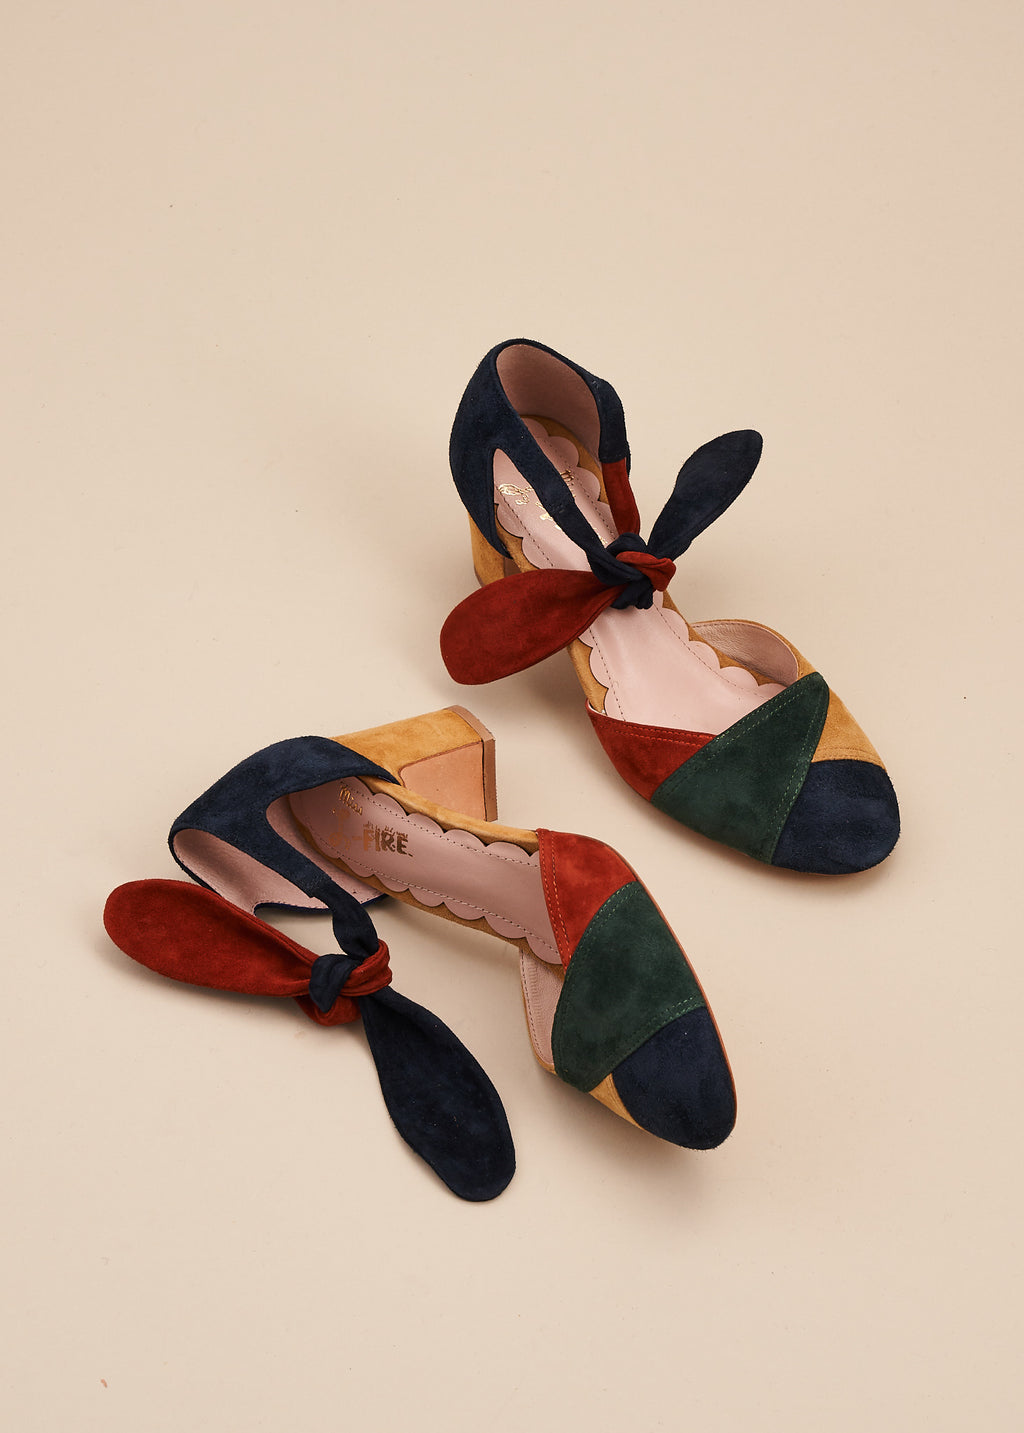 Clarice in multi jewel tone suede is an Art Deco inspired two part shoe with soft suede ankle tie detail and 6cm heel. Perfect for all occasions, or dressing up at home! By designer Miss L Fire.